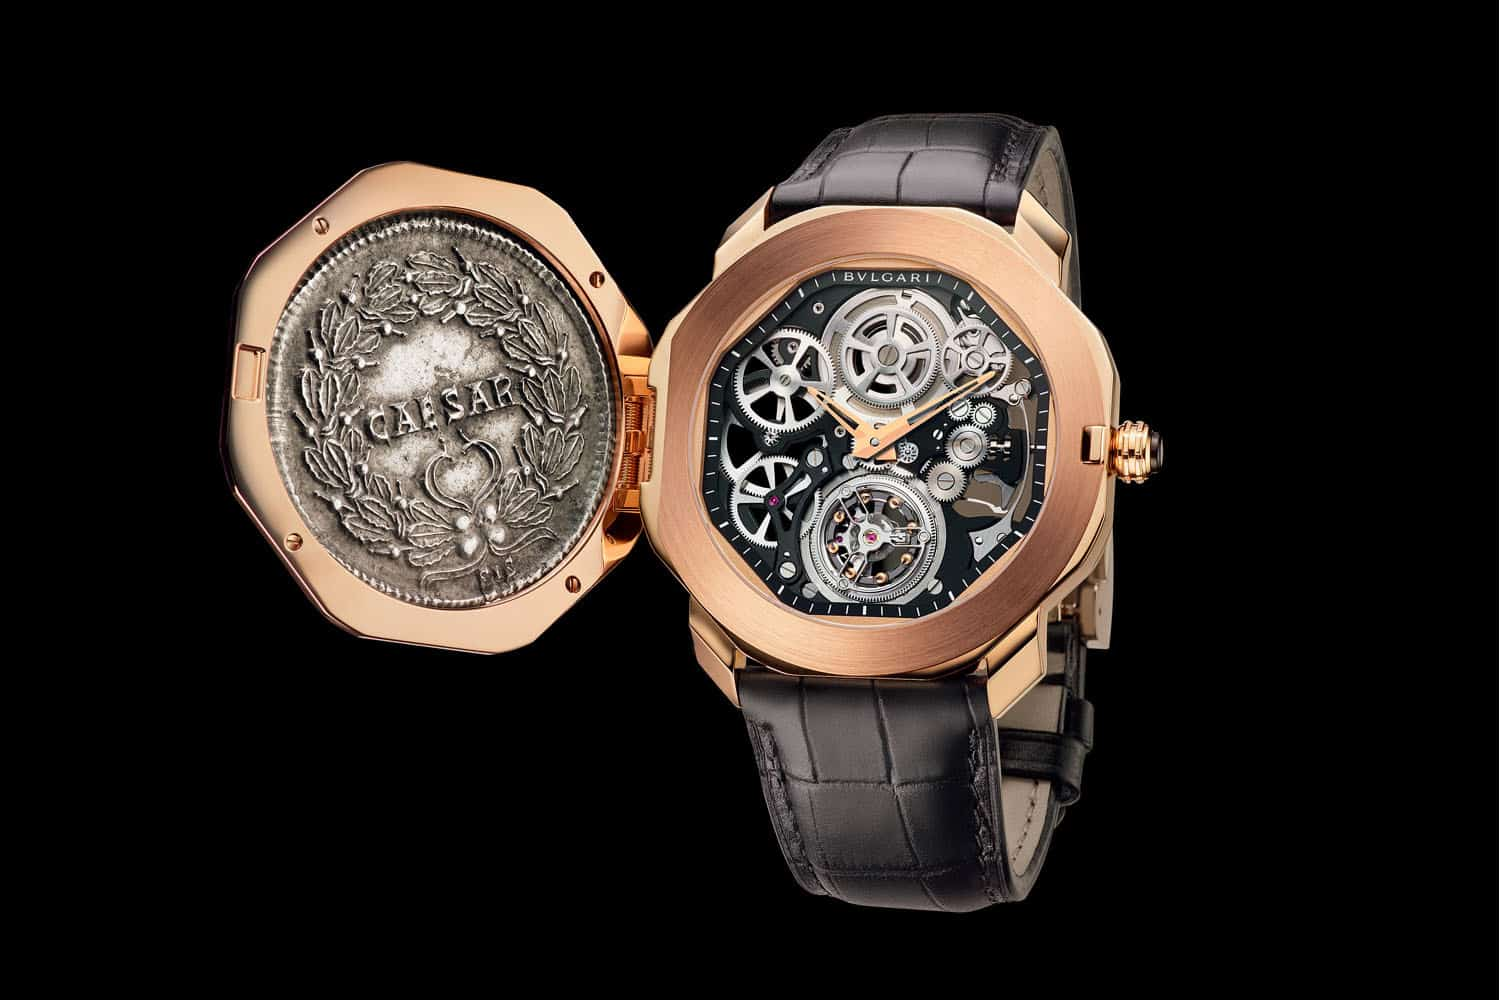 Roman Time The Bulgari Octo Finissimo Tourbillon Monete